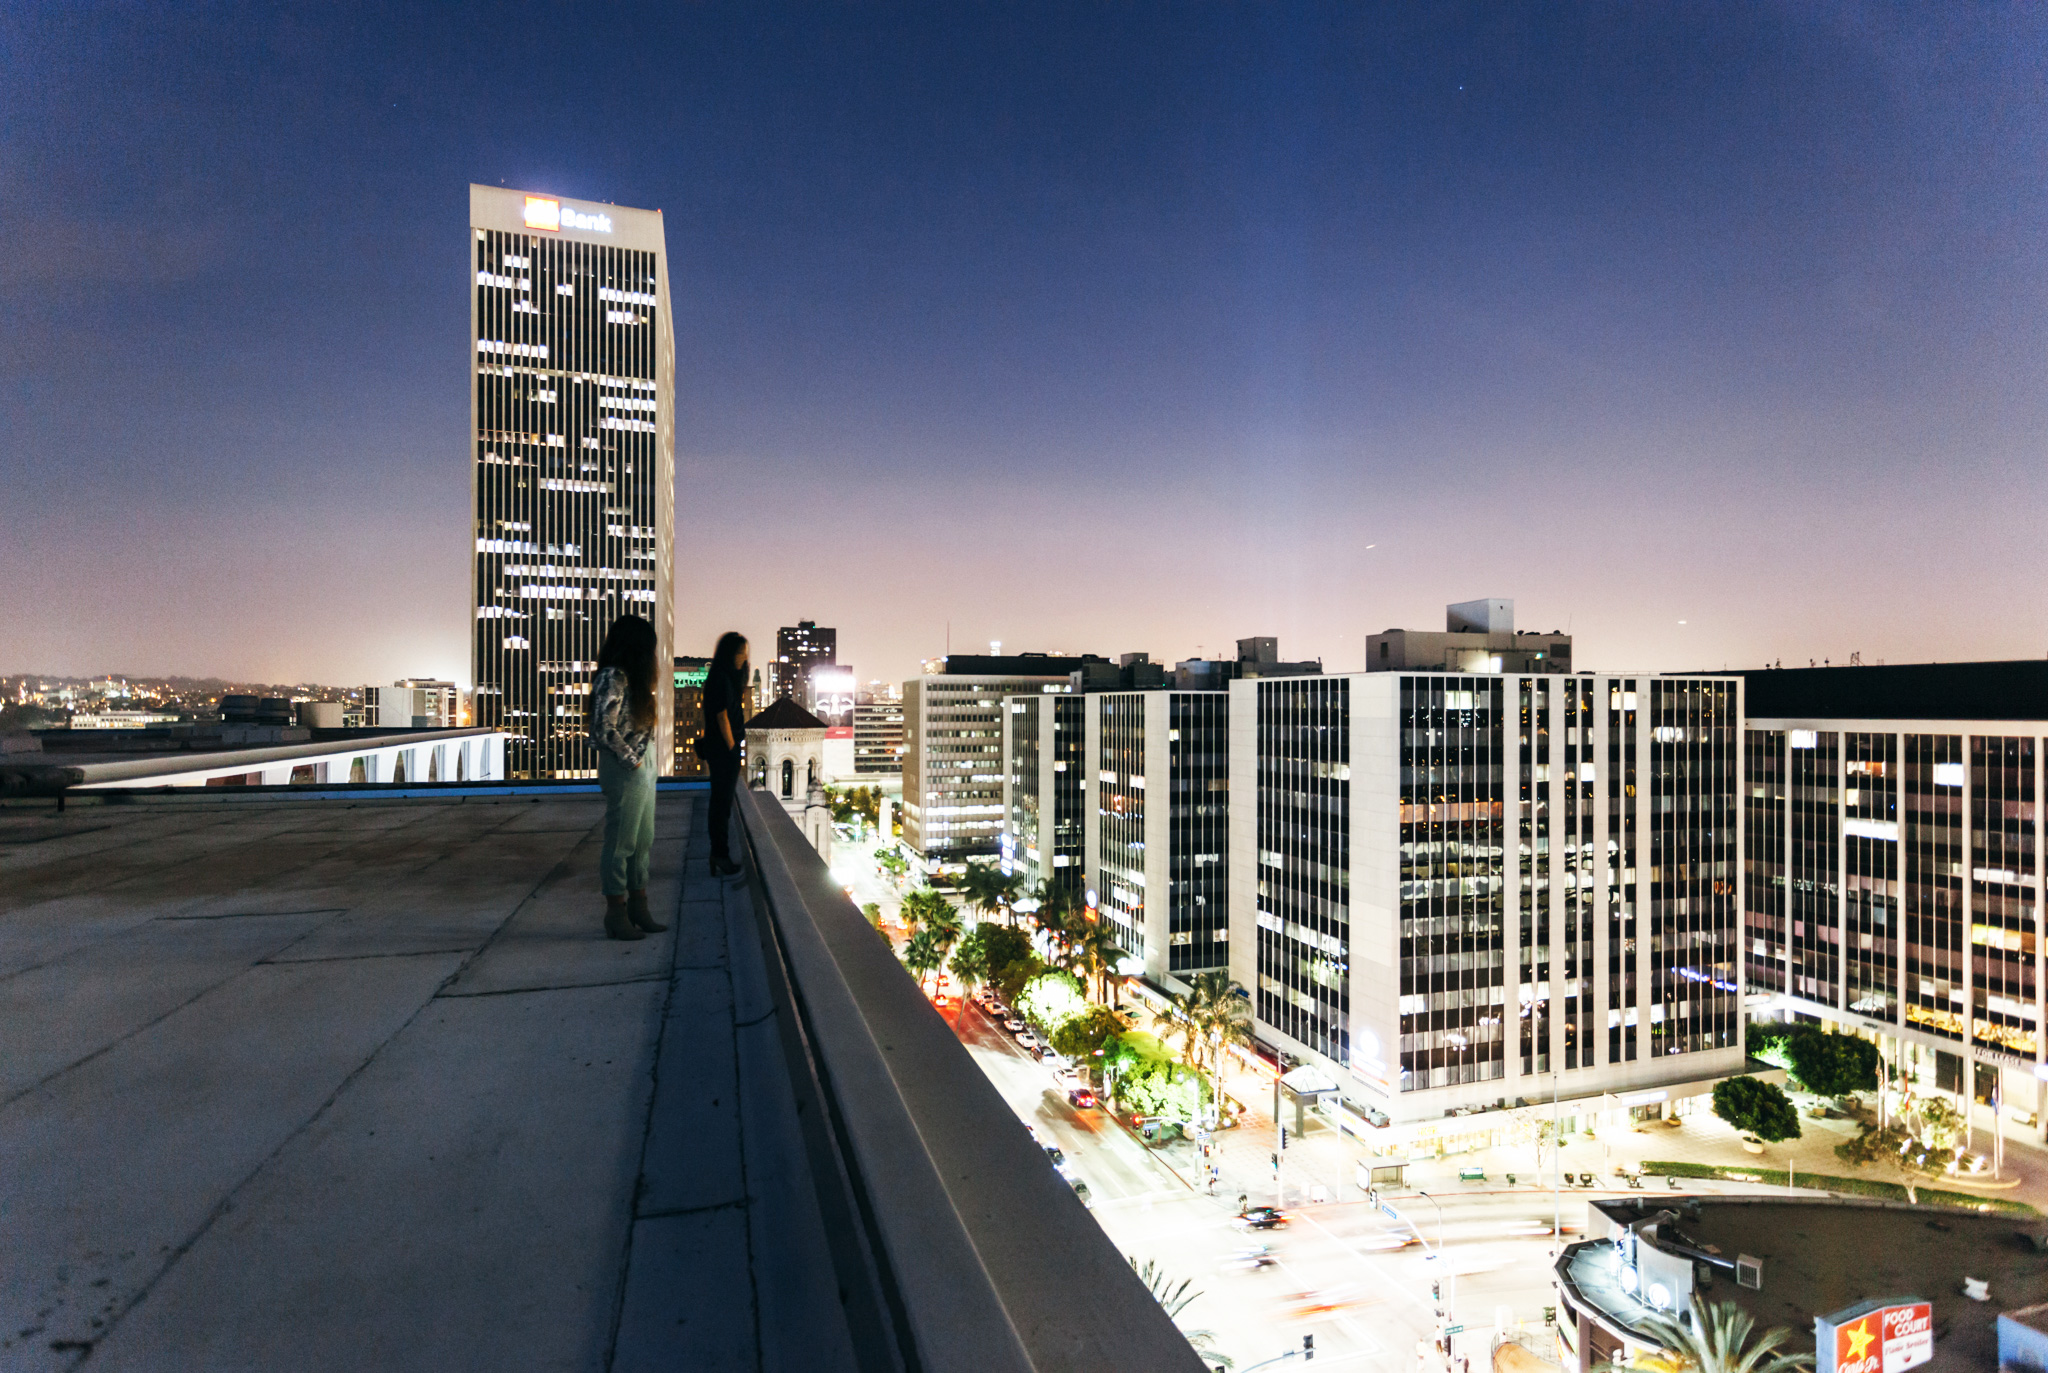 Koreatown, LA: It's About Time - The Emergence of Koreatown